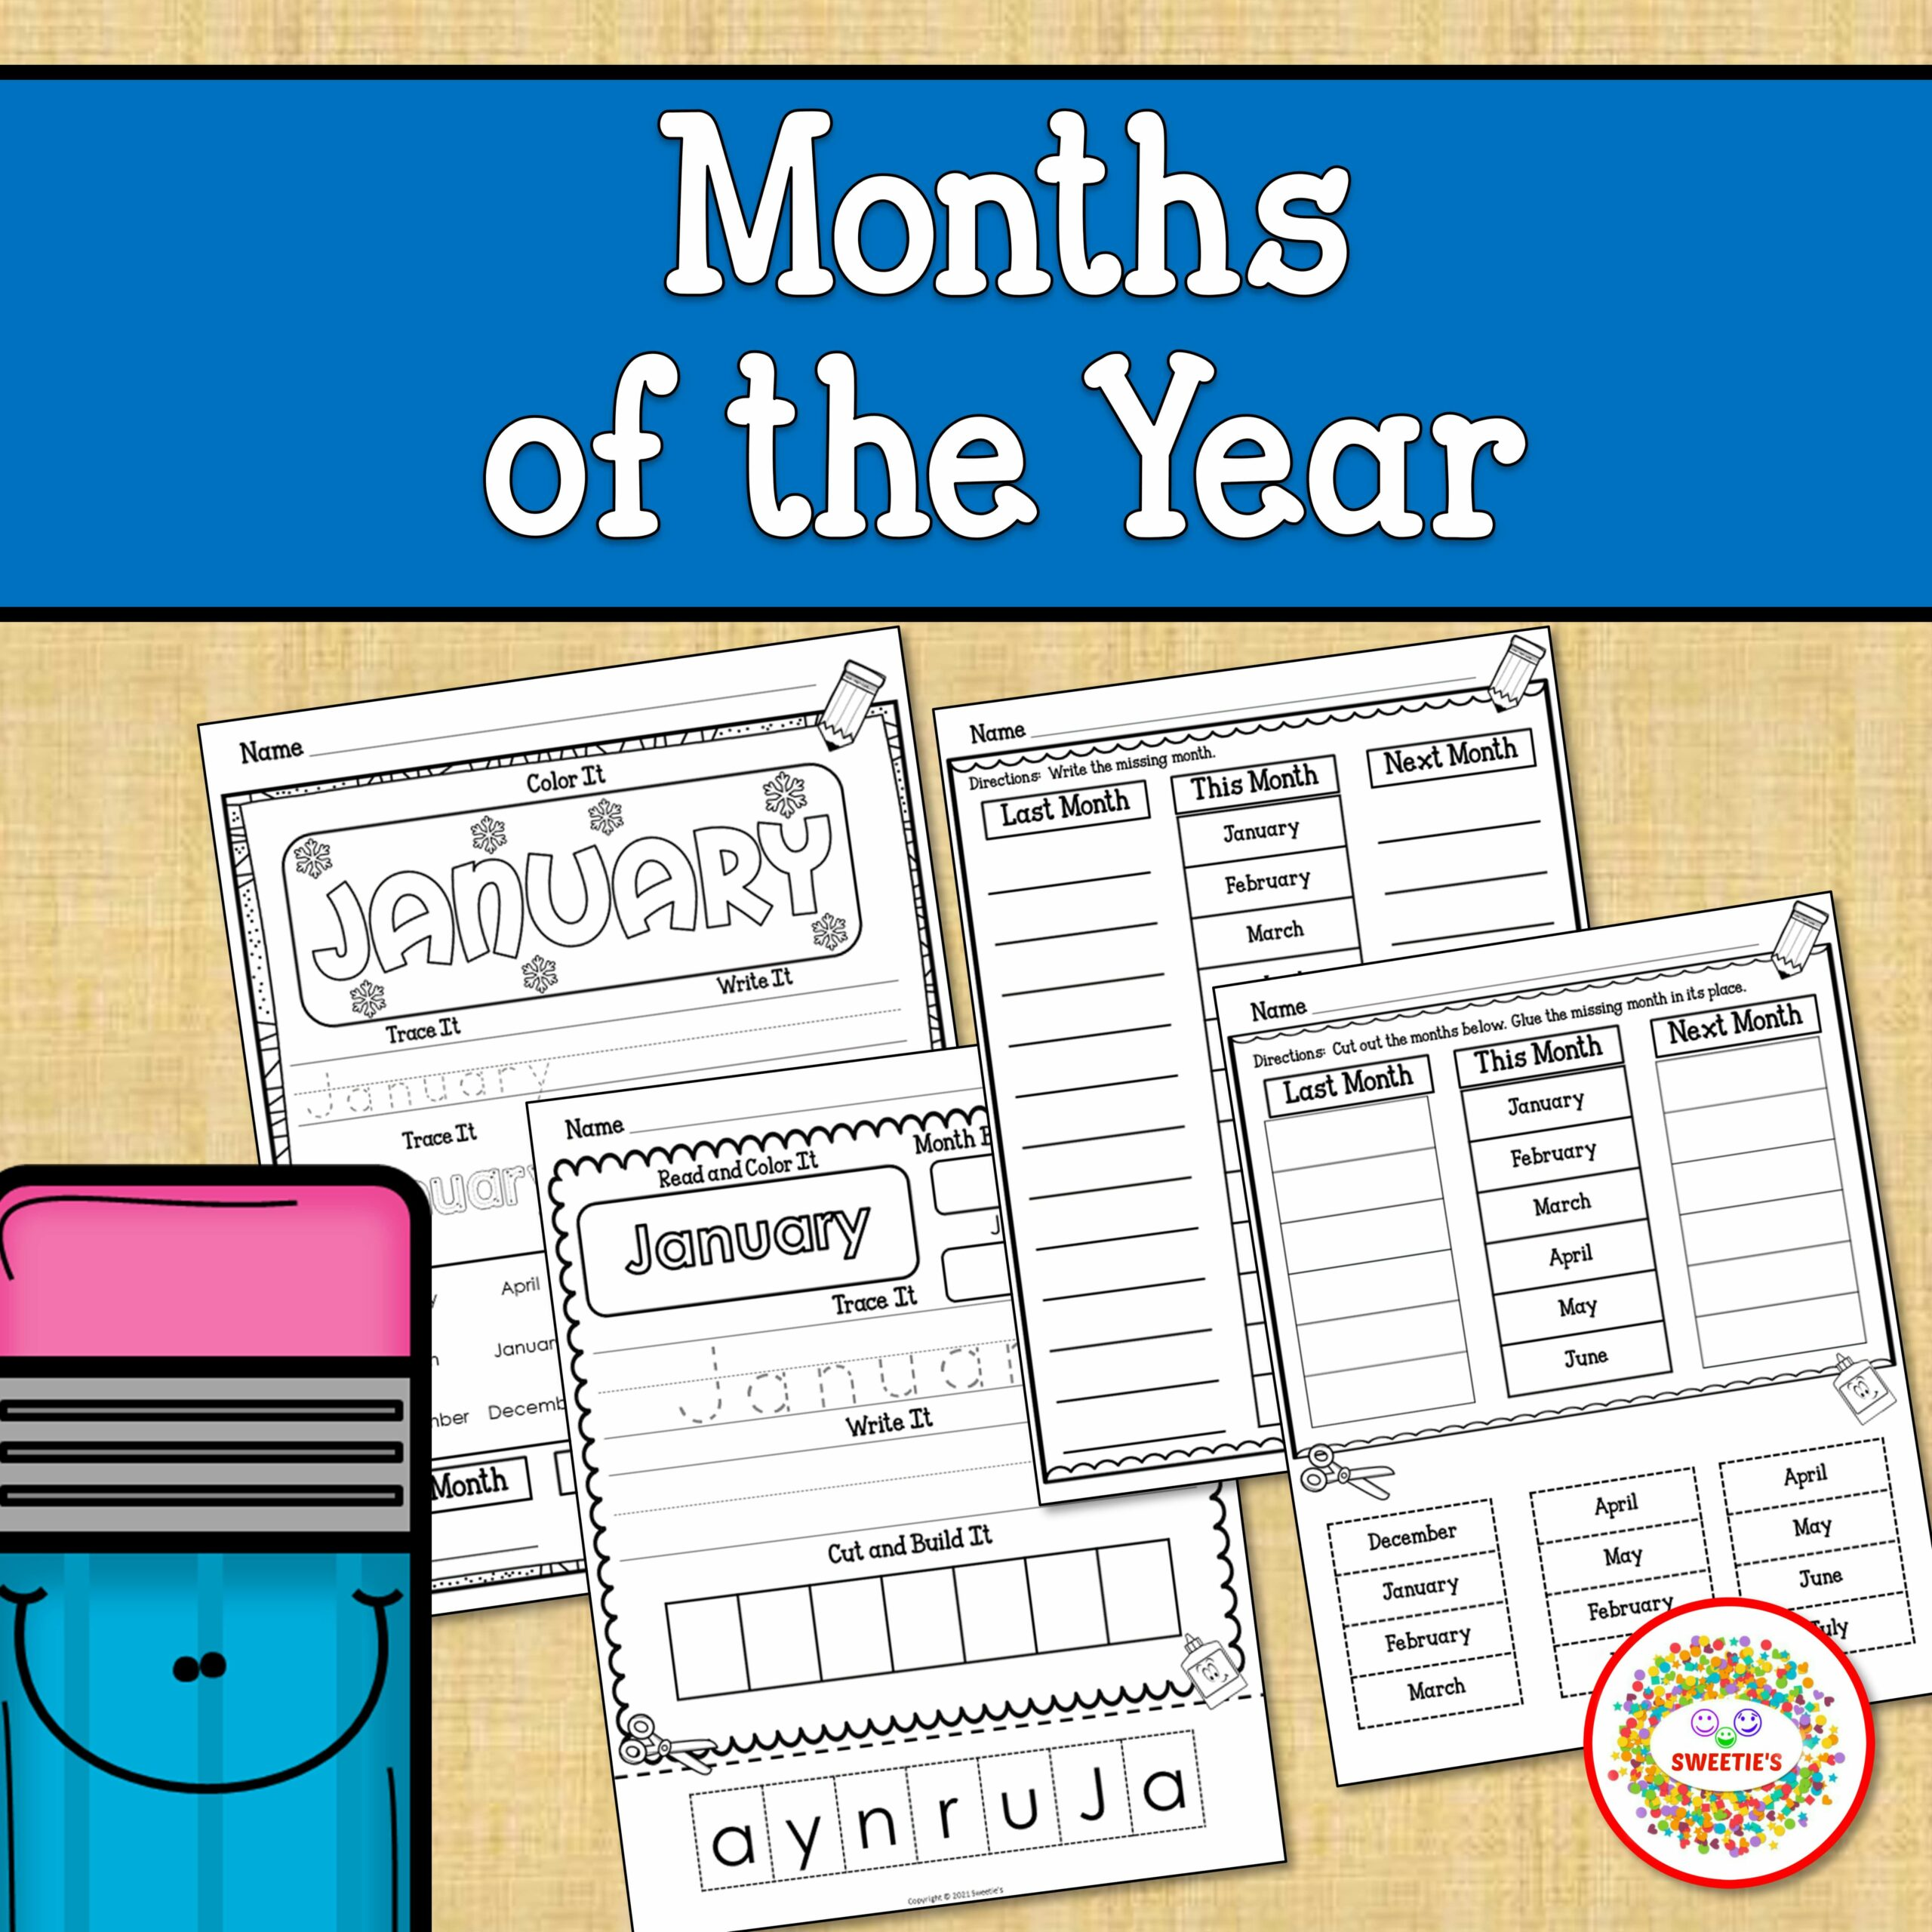 Months of the Year Printable Worksheets